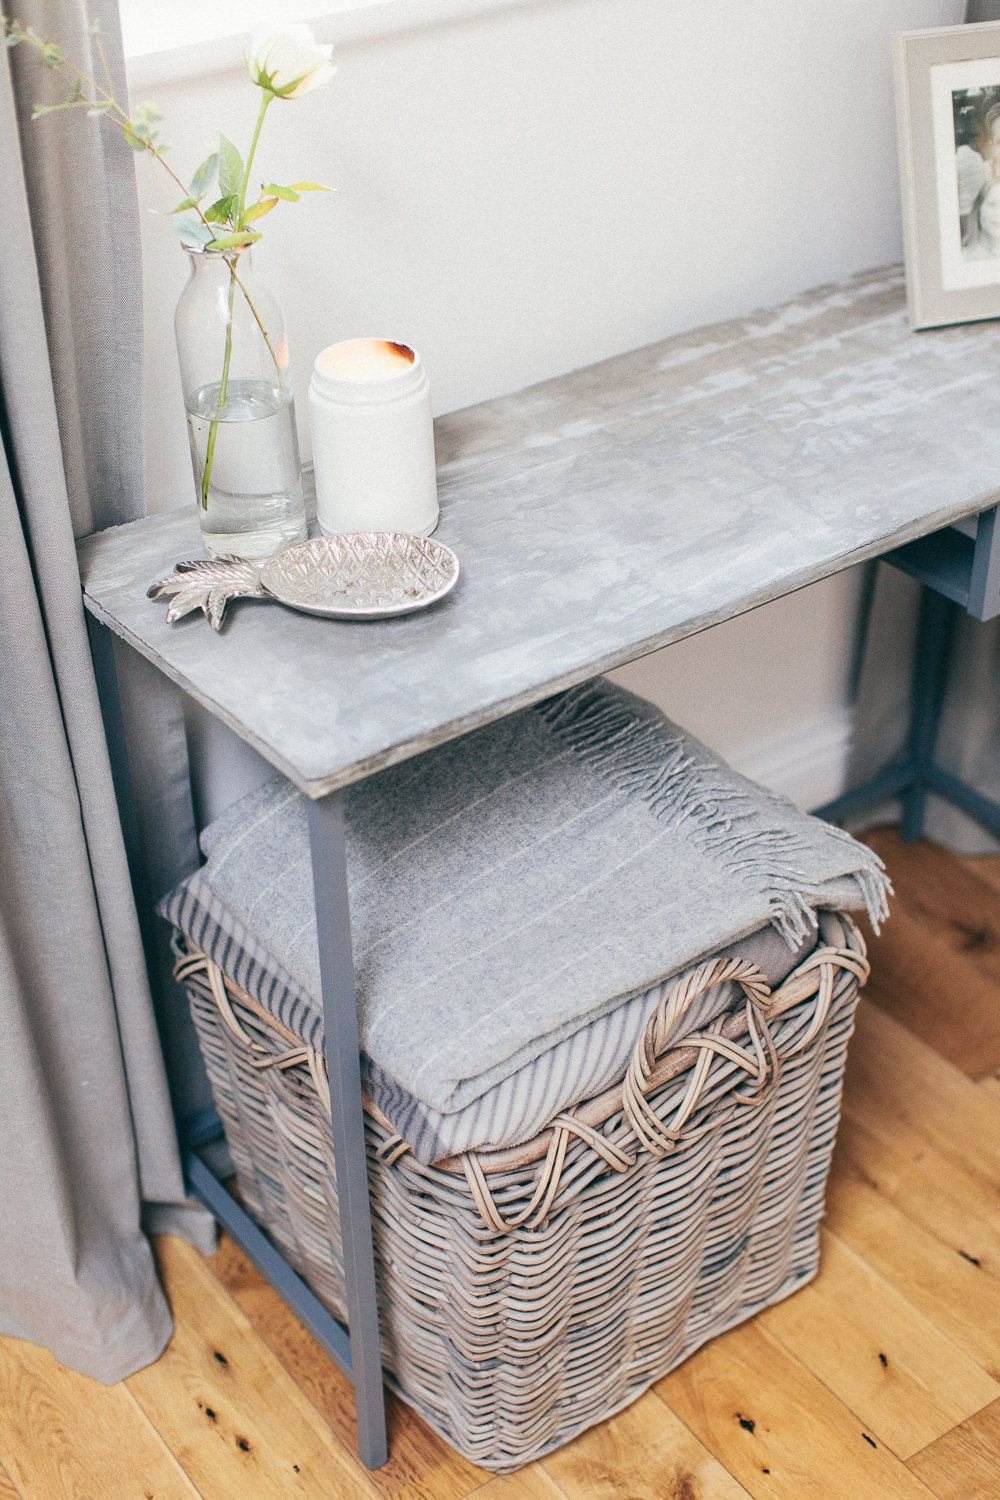 Vittsjo laptop table to upscale side table get home decorating - Ikea Vittsjo Laptop Table Concrete Console Hack